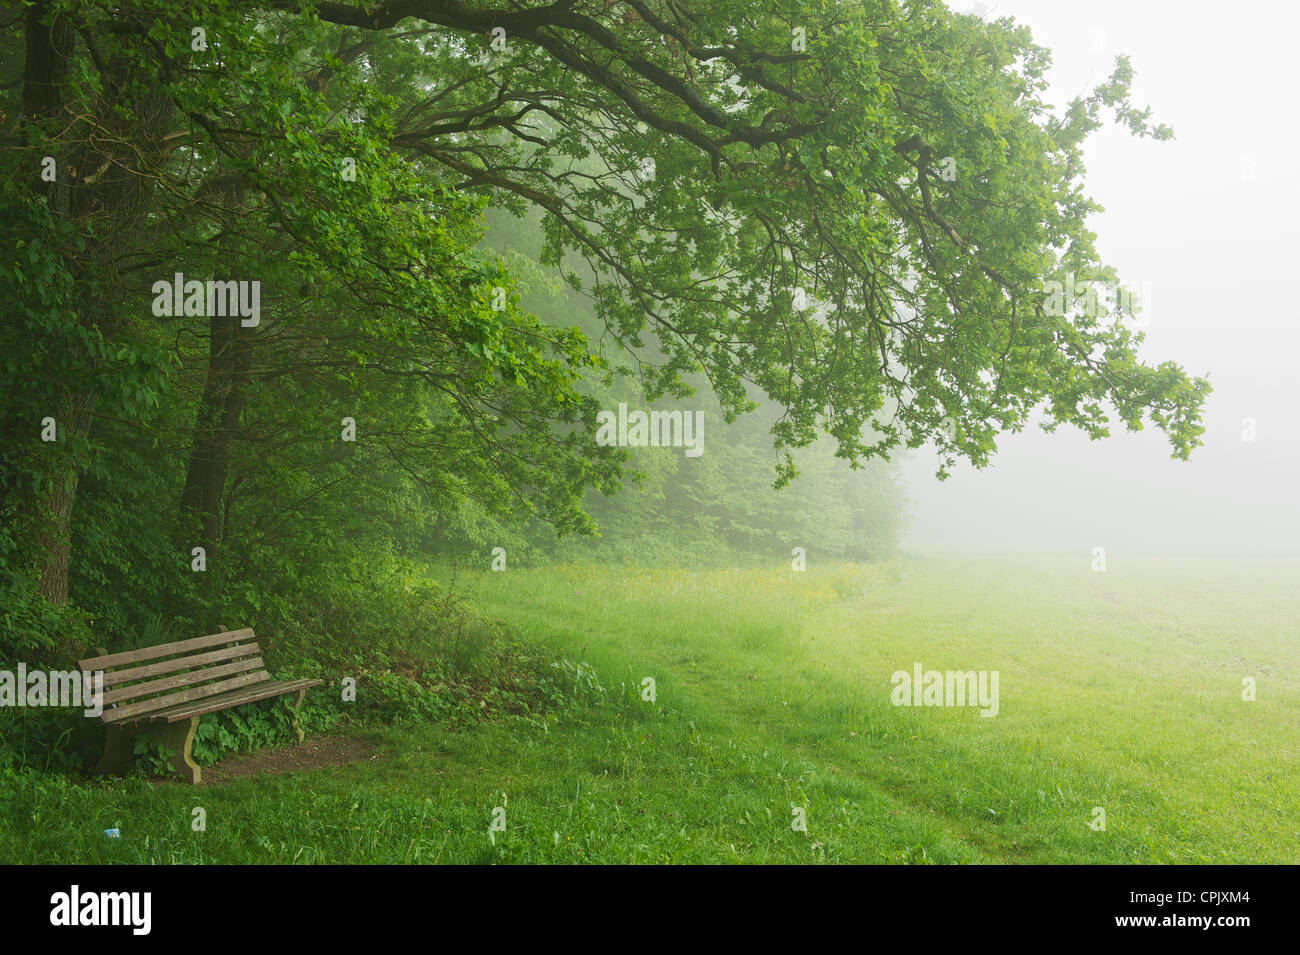 Forest in morning fog. the fog creates a mystical atmosphere. the trees in the background appear shaded - Stock Image